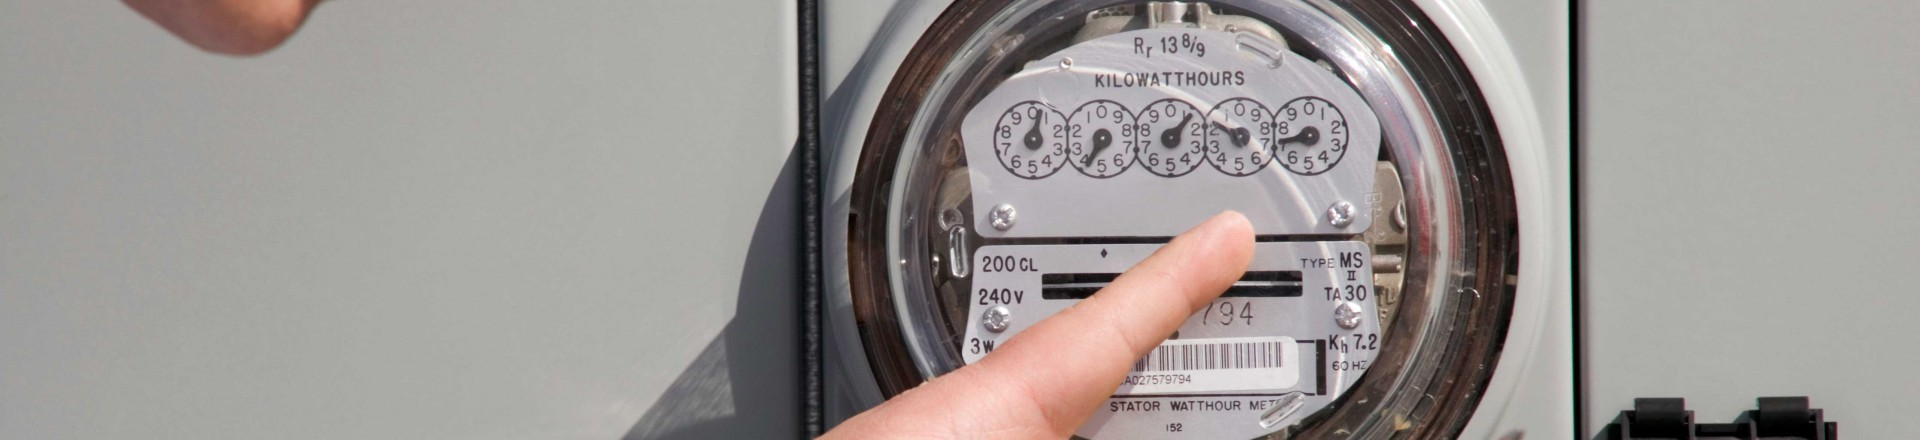 checking electricity